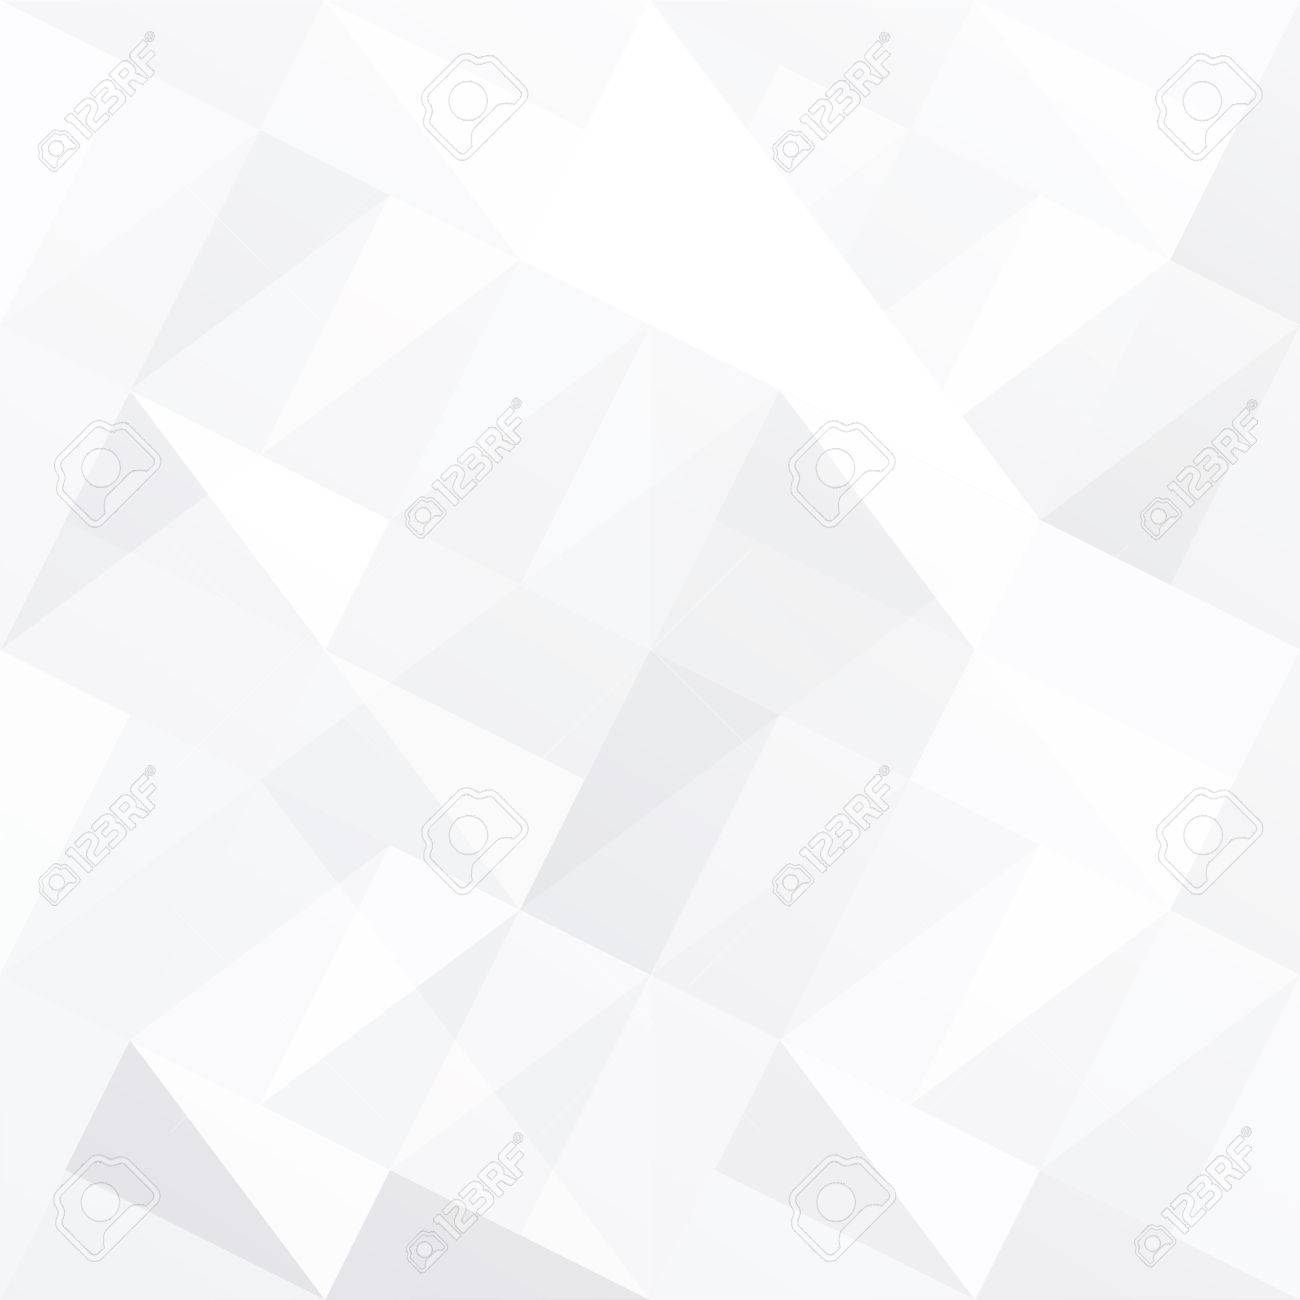 White triangle background abstract - 65257046